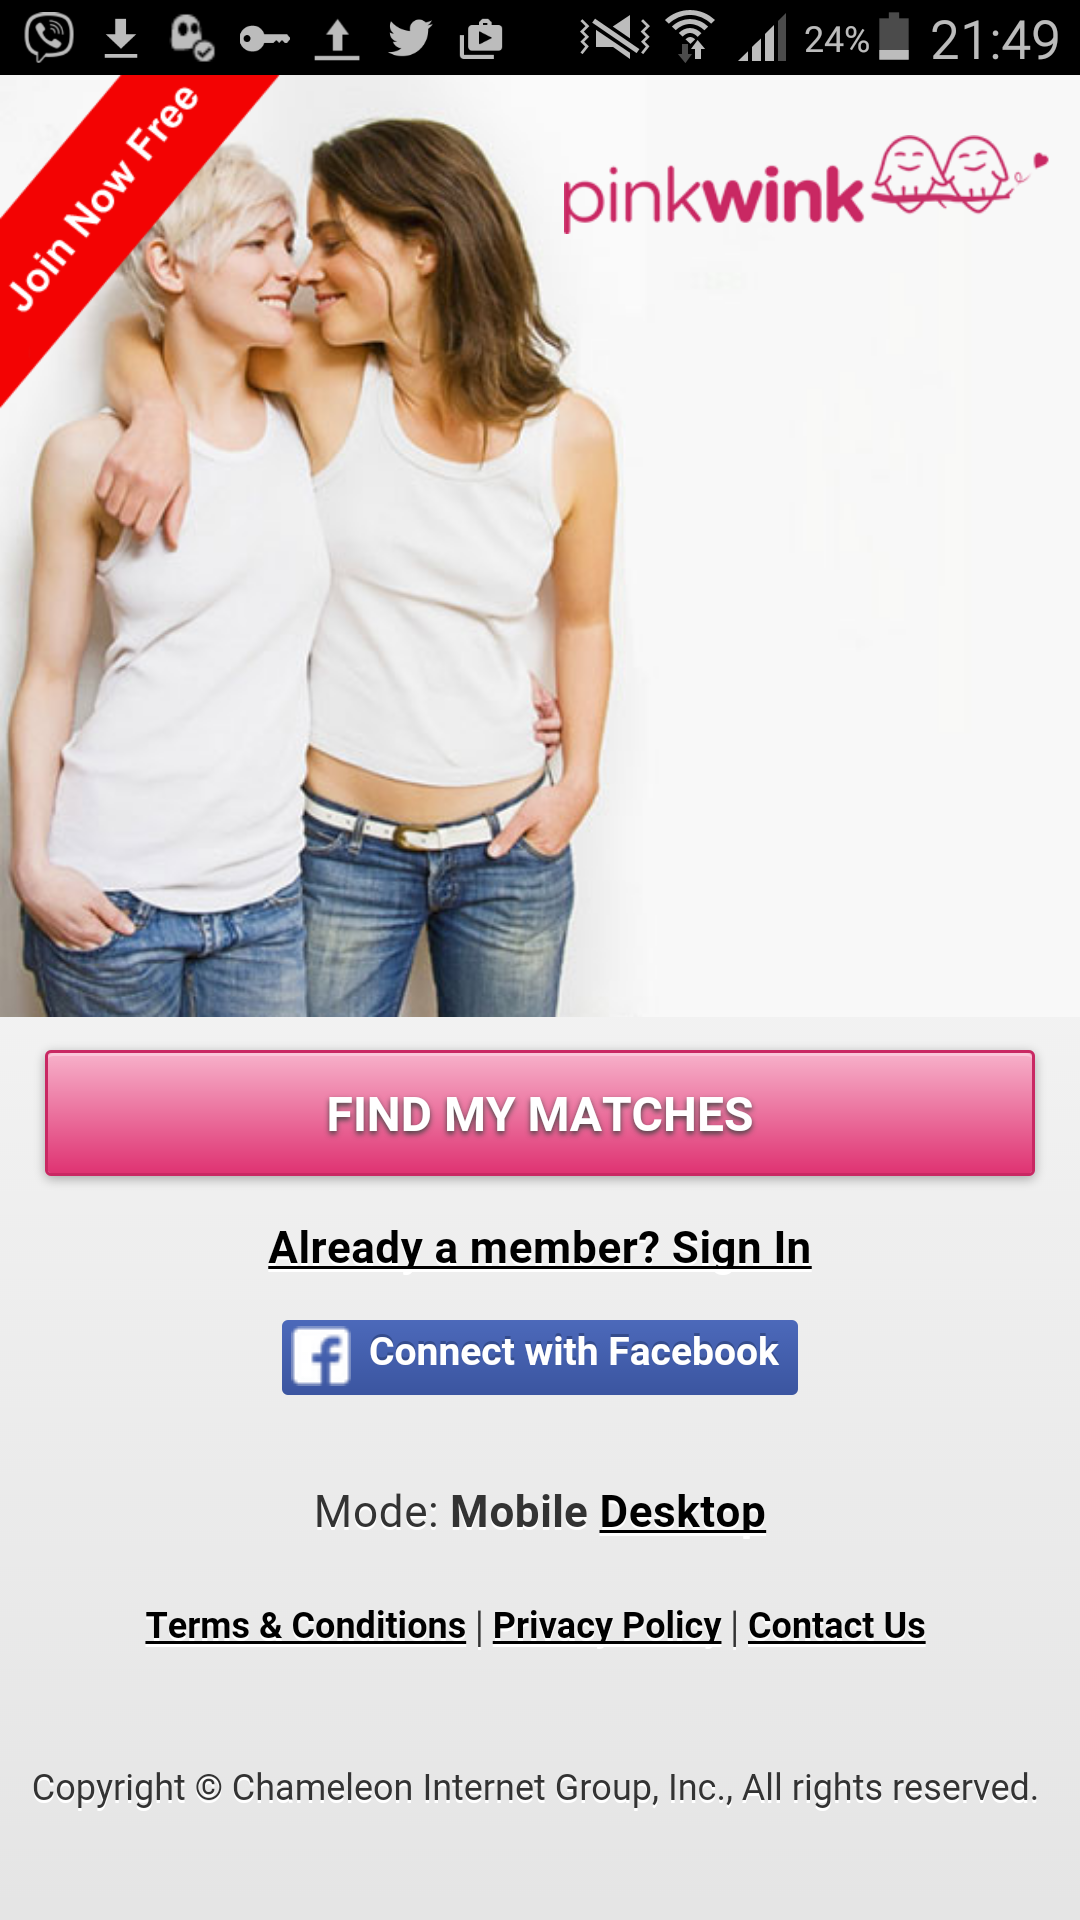 kyburz lesbian dating site Warman: epithets unbecoming  she is a well known ottawa lesbian warman has known maceachern dating back to  represented the chrc in the kyburz.